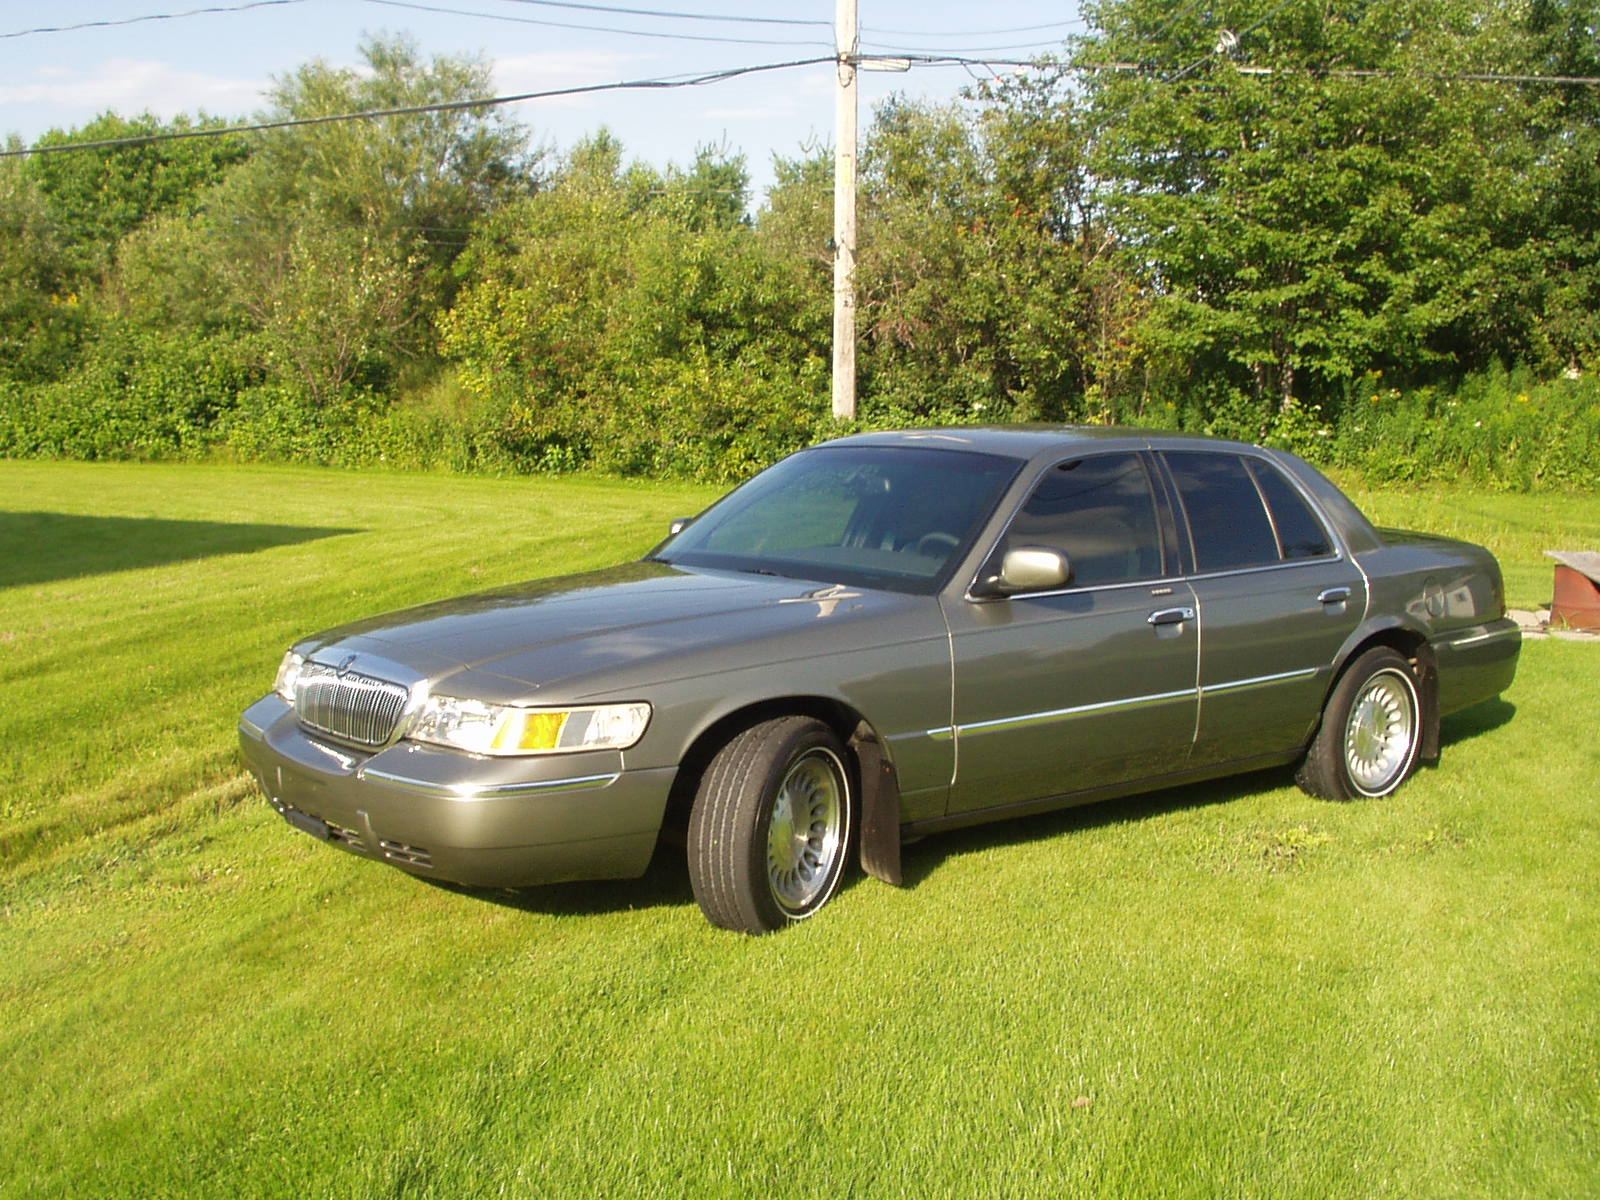 2001 Mercury Grand Marquis #8